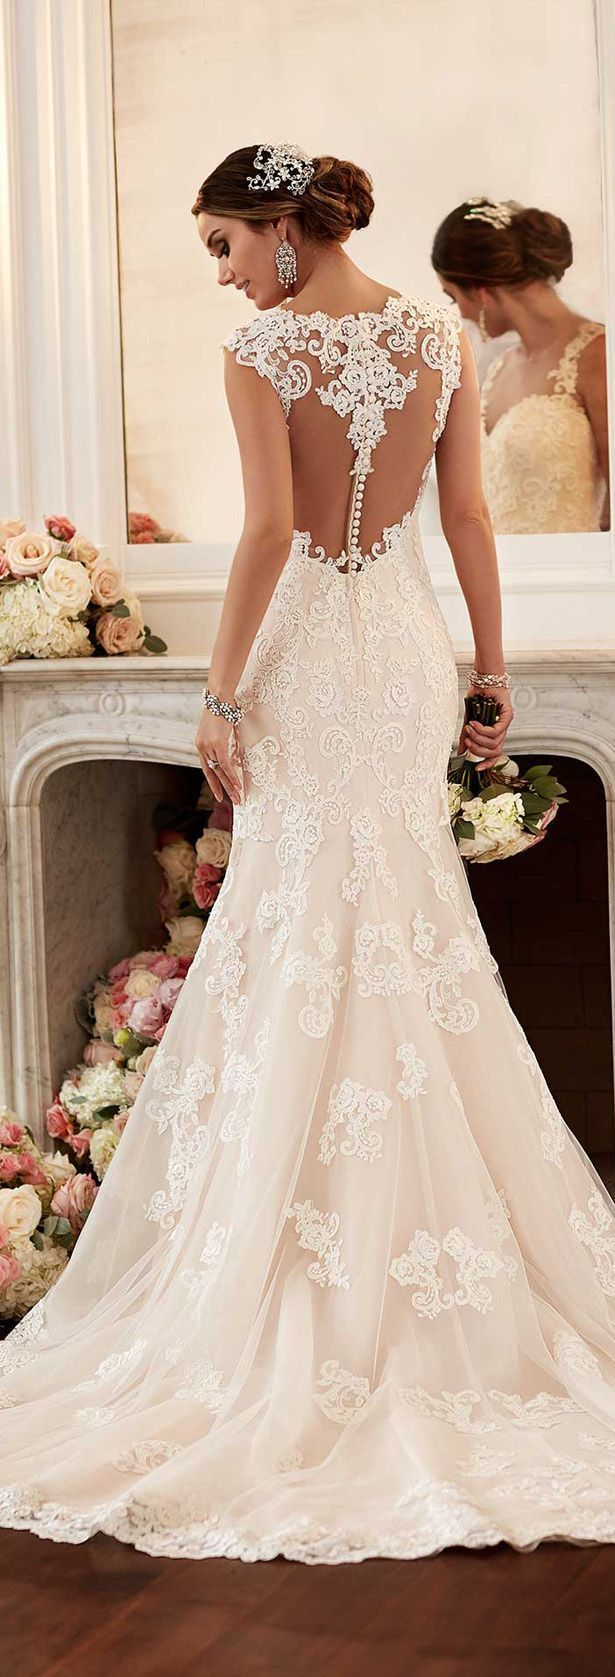 wedding dresses fashionstyledressesnew things to